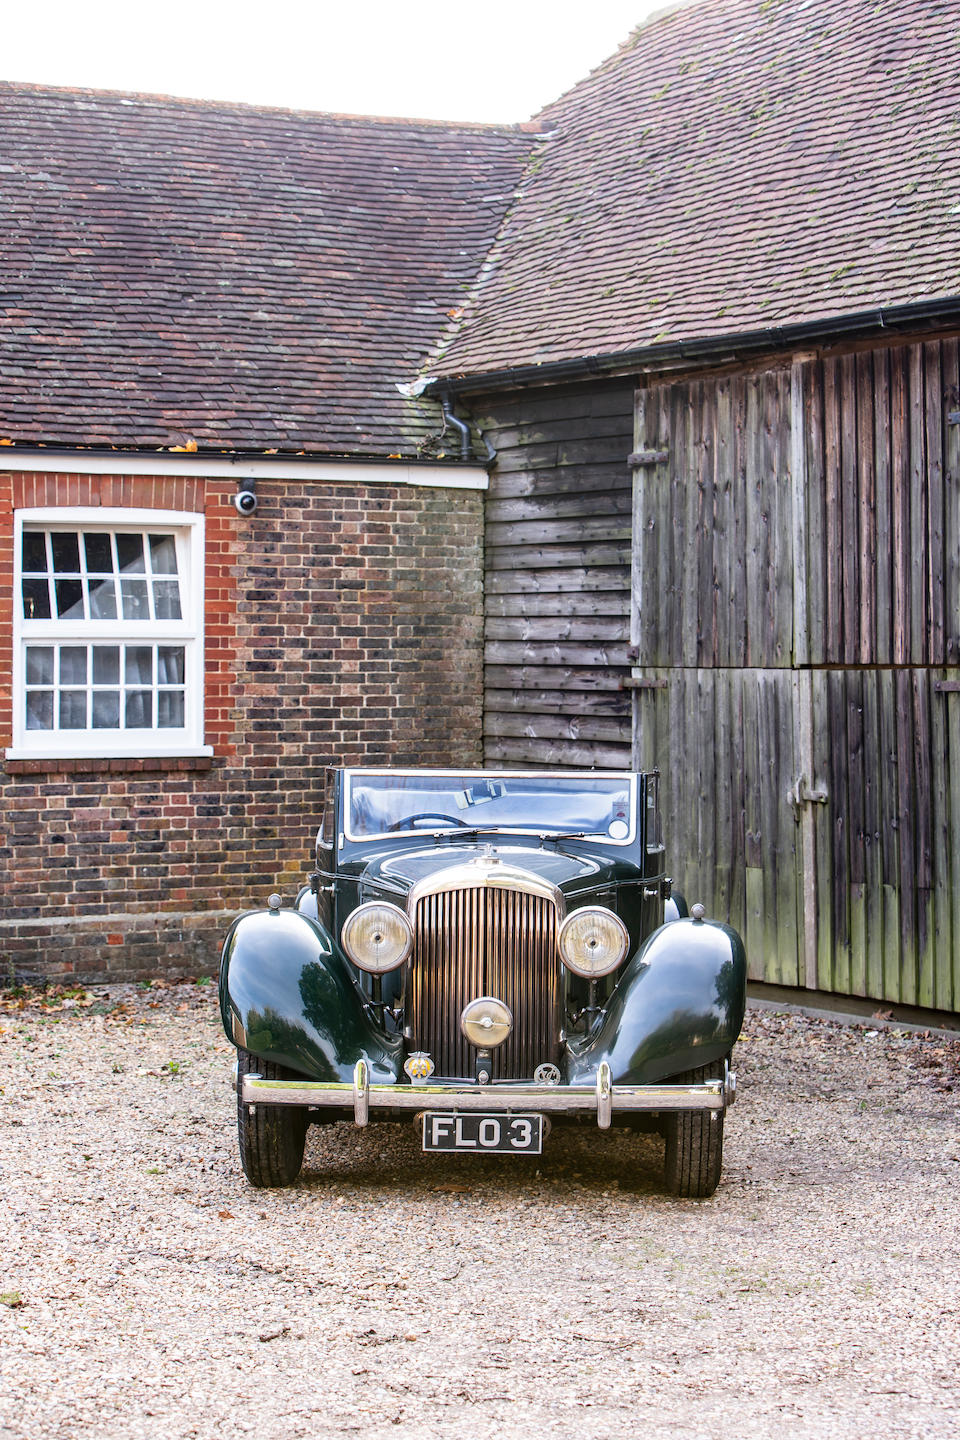 From the estate of the late Air Marshal Sir Freddie Sowrey KCB, CBE, AFC,1939 Bentley 4¼-Litre All-weather Cabriolet  Chassis no. B-80-MR